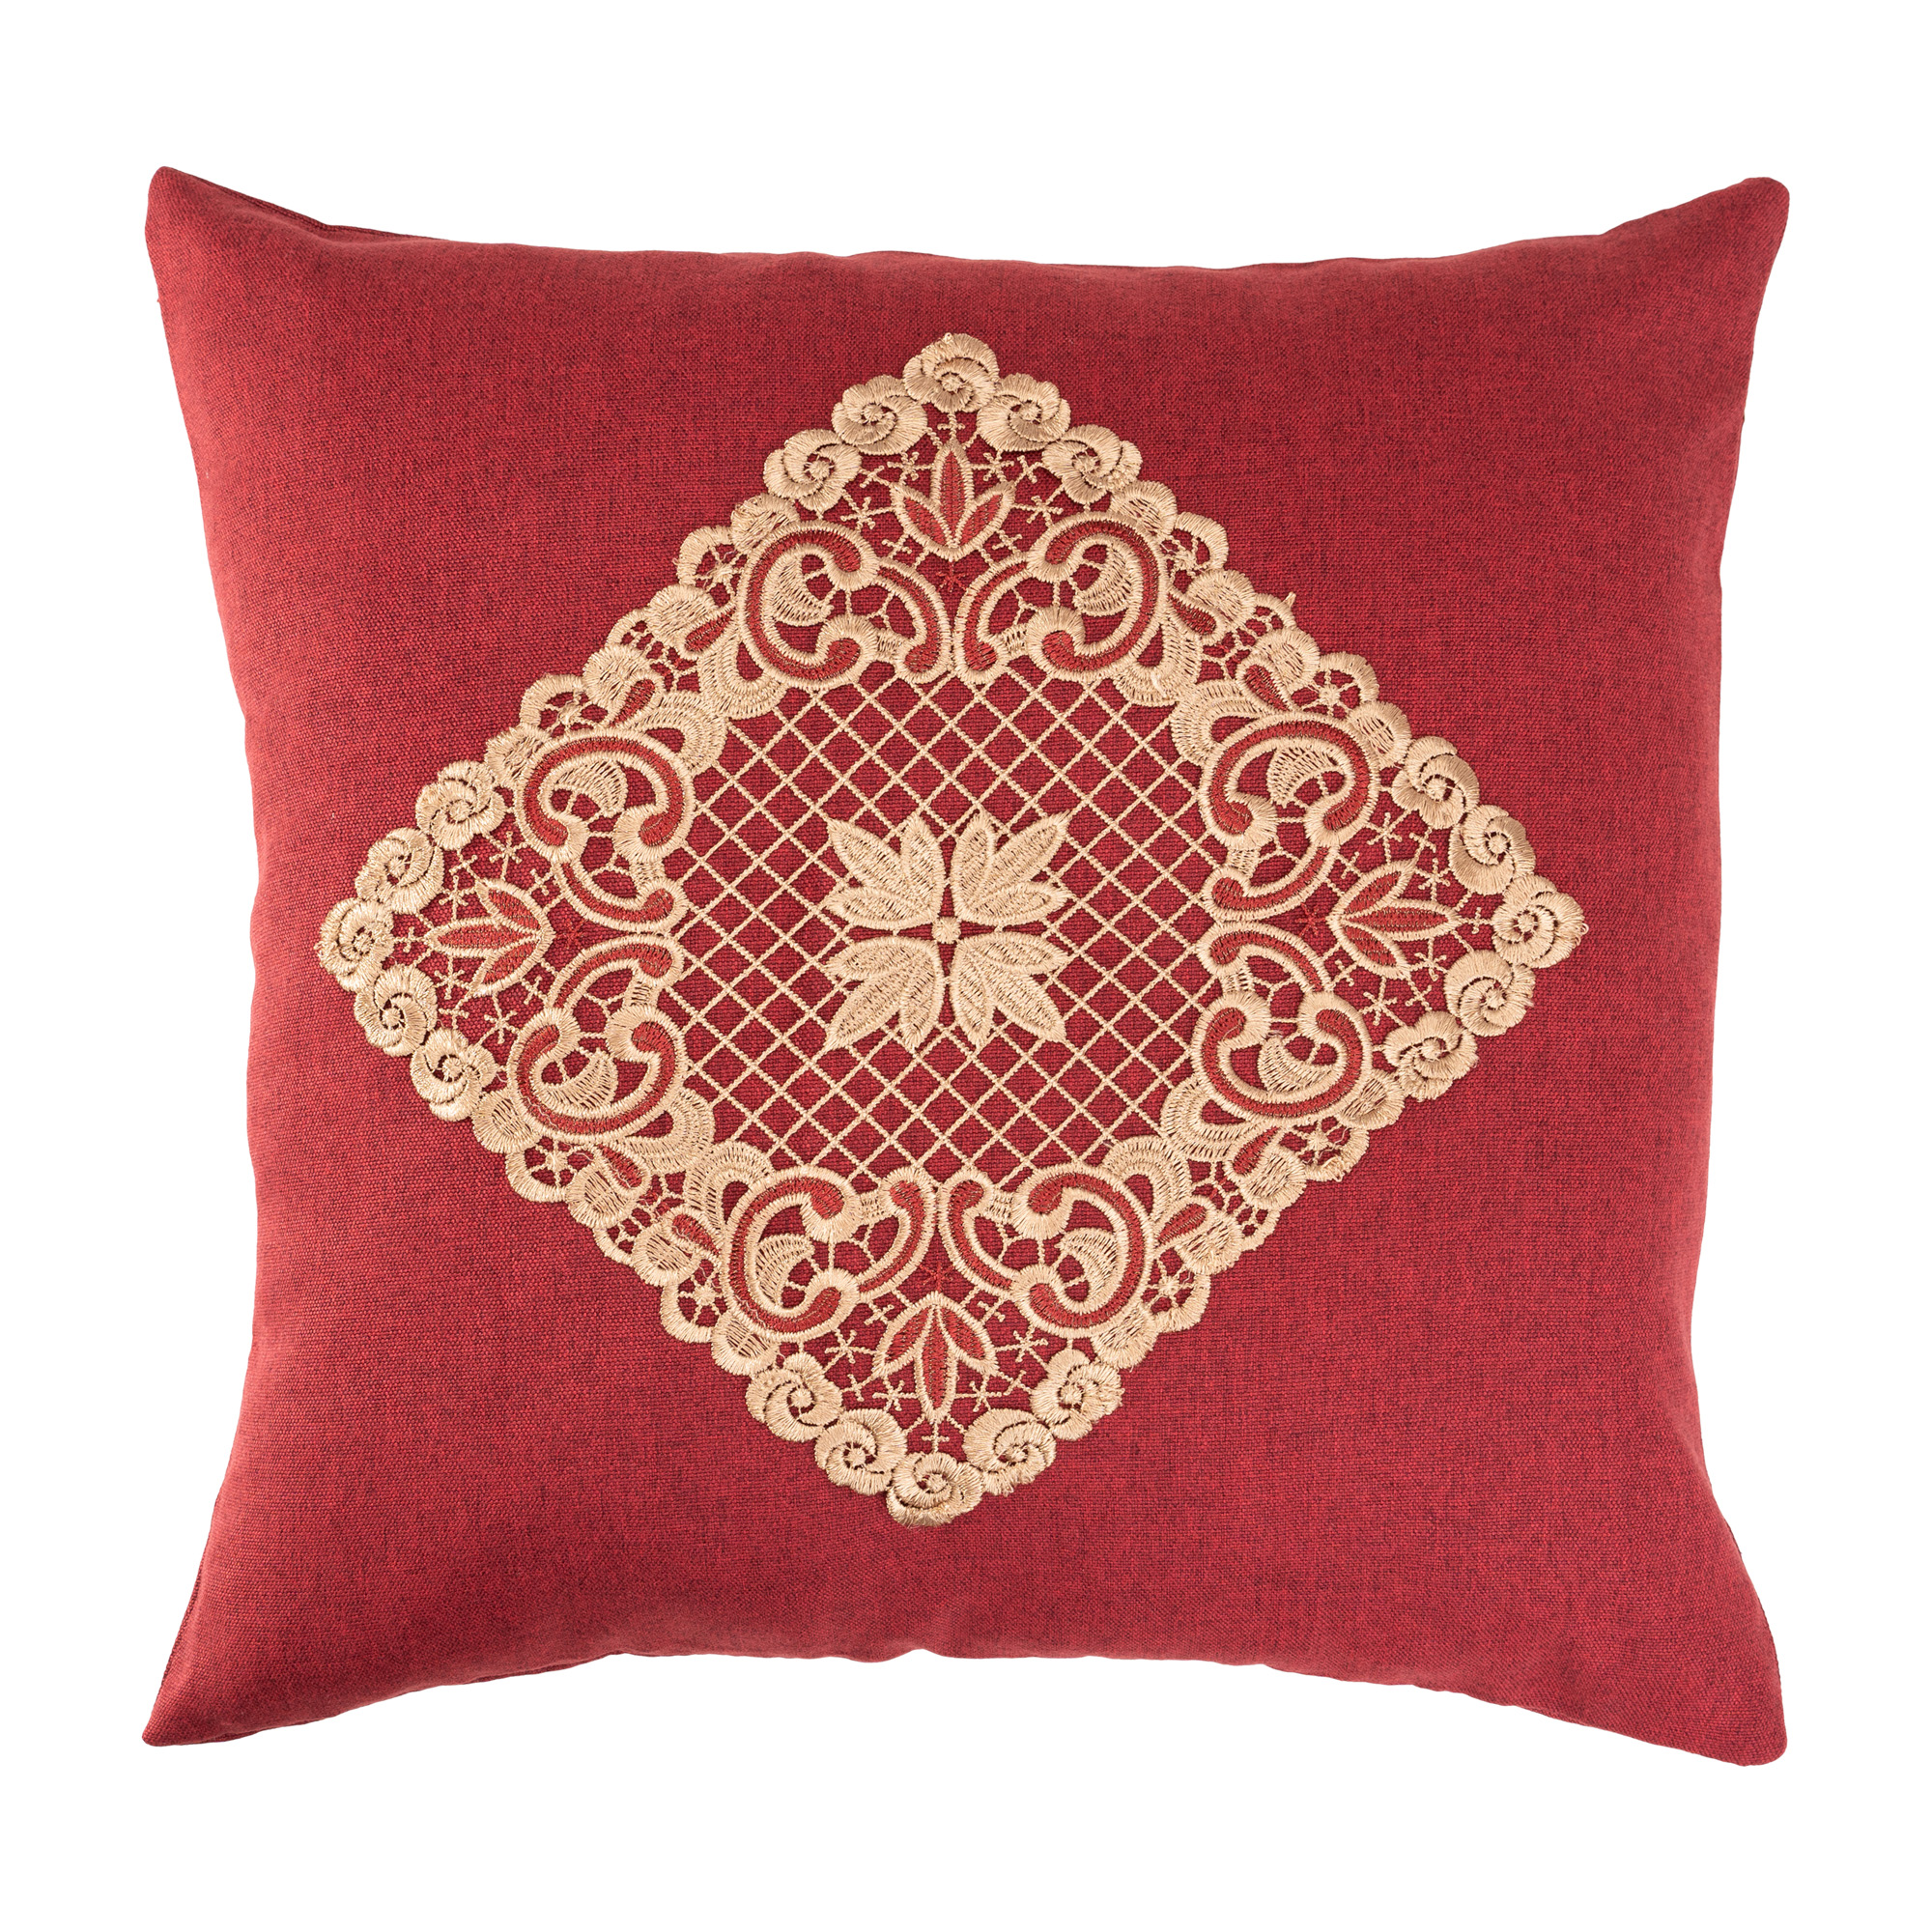 """Peranakan Lace Gold Floral Square Cushion Cover/Throw Pillow Cover. Easy Care Cation Fabric. 45x45/18x18"""" (Red Or Green)"""